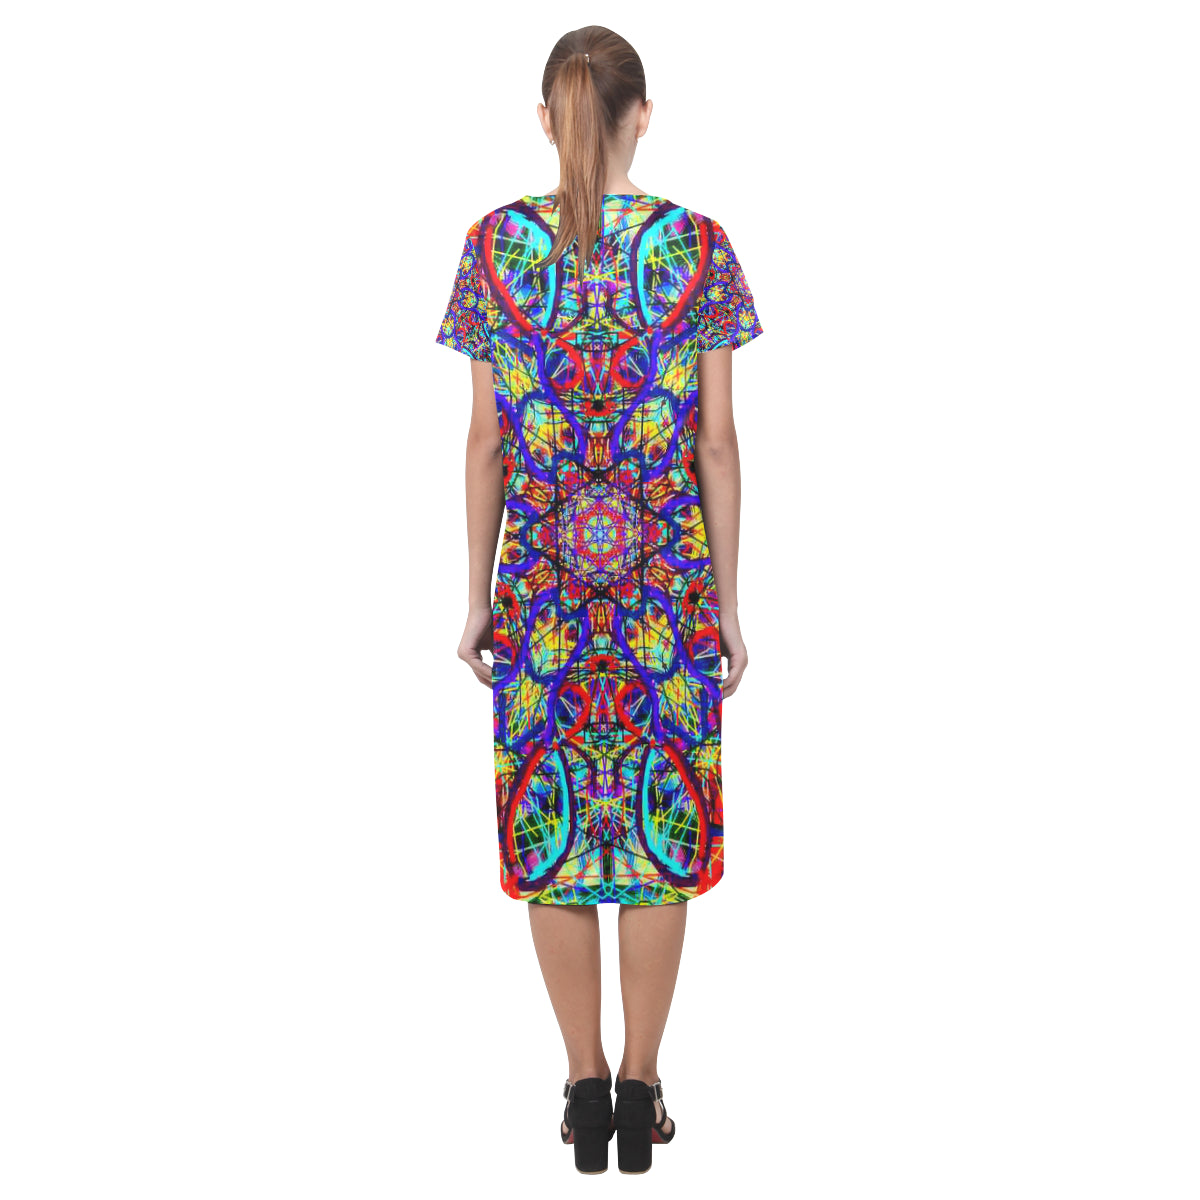 Thleudron Women's Visha Short Sleeves Casual Dress(Model D14) - Thleudron